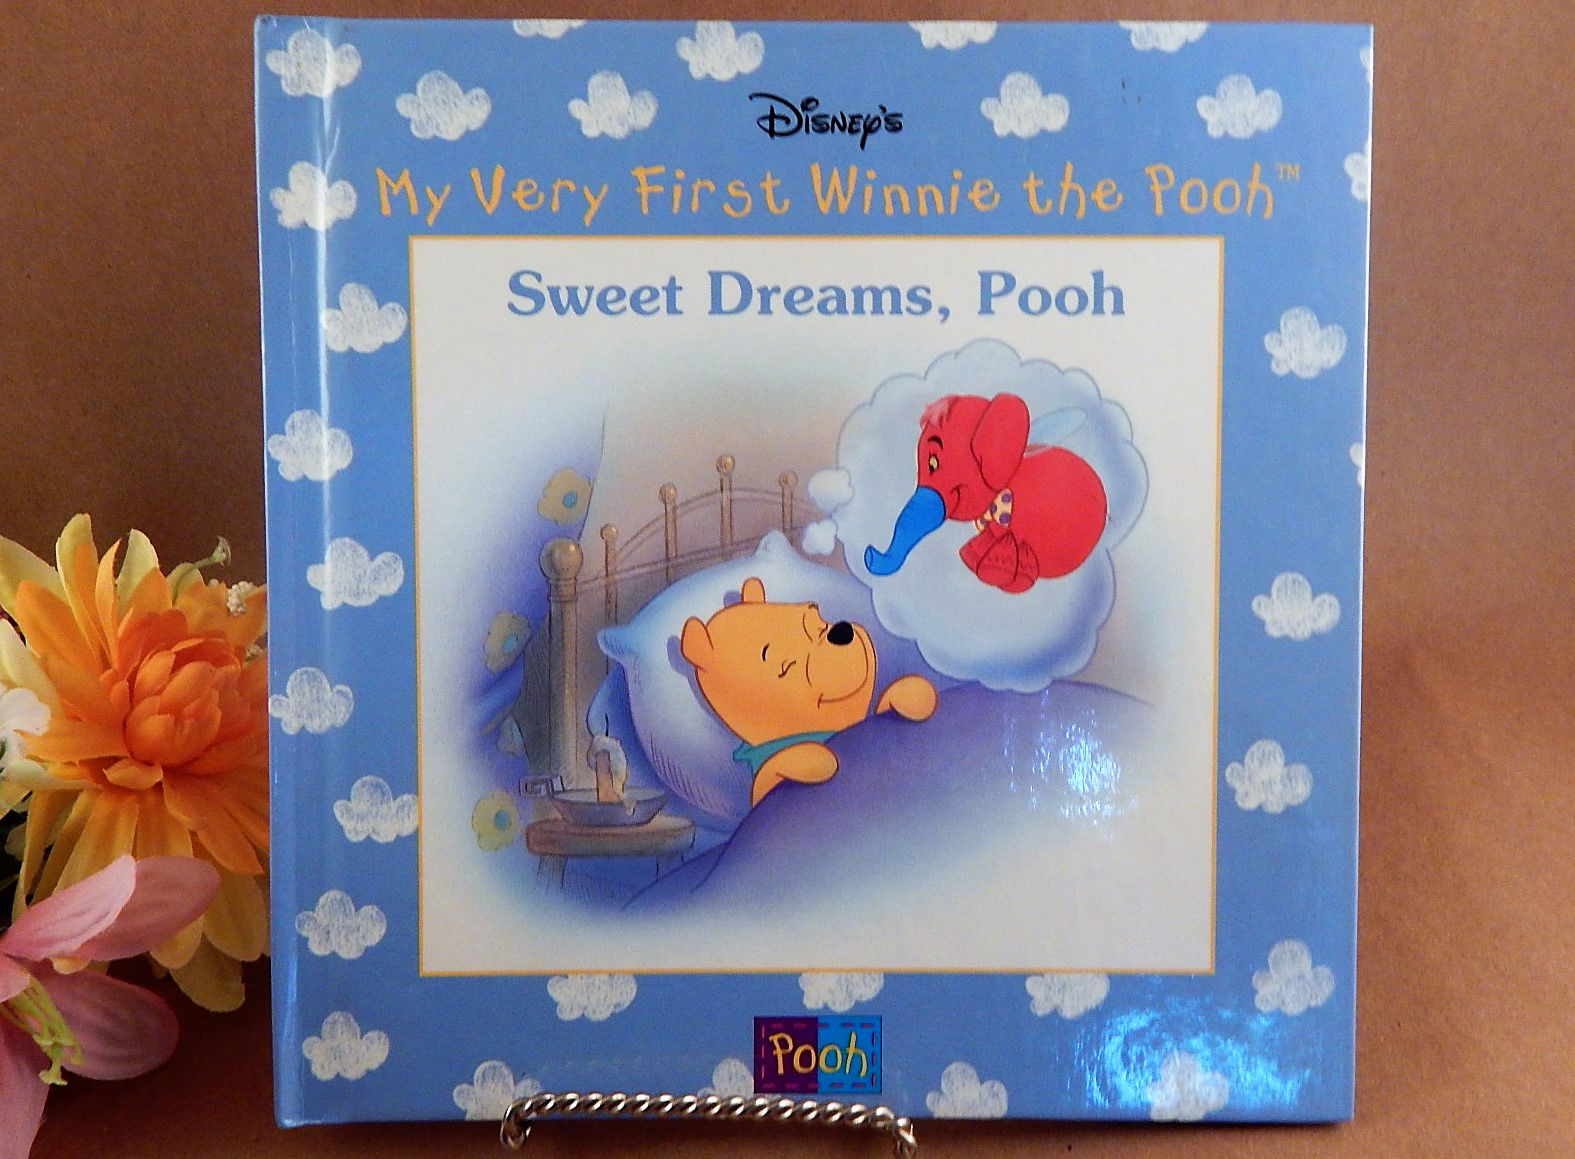 Book Sweet Dreams Pooh Disneys My Very First Winnie the Pooh Color Illustrated Animal Picture Story Vintage 1998 Hardback Gift Book for Children